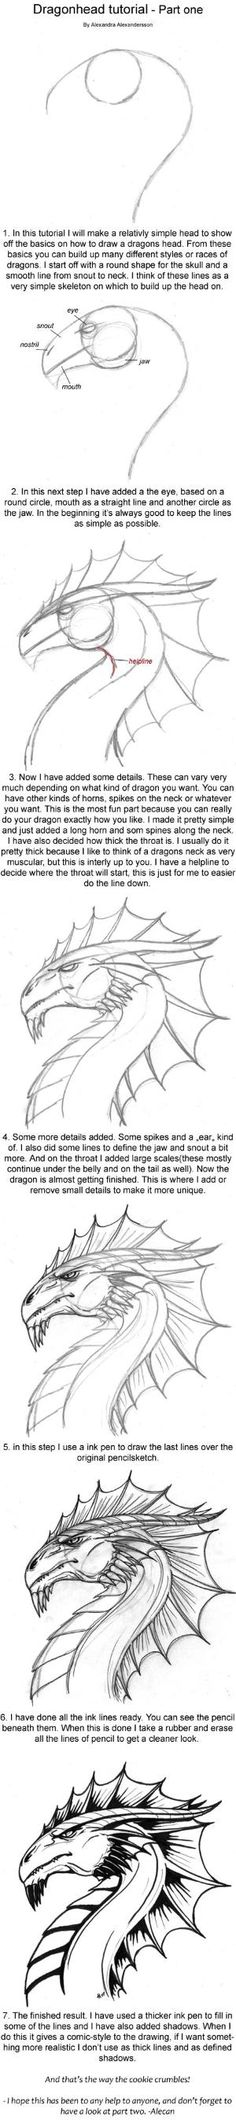 Dragonhead Tutorial part one by alecan.deviantart.com on @deviantART by suzanne